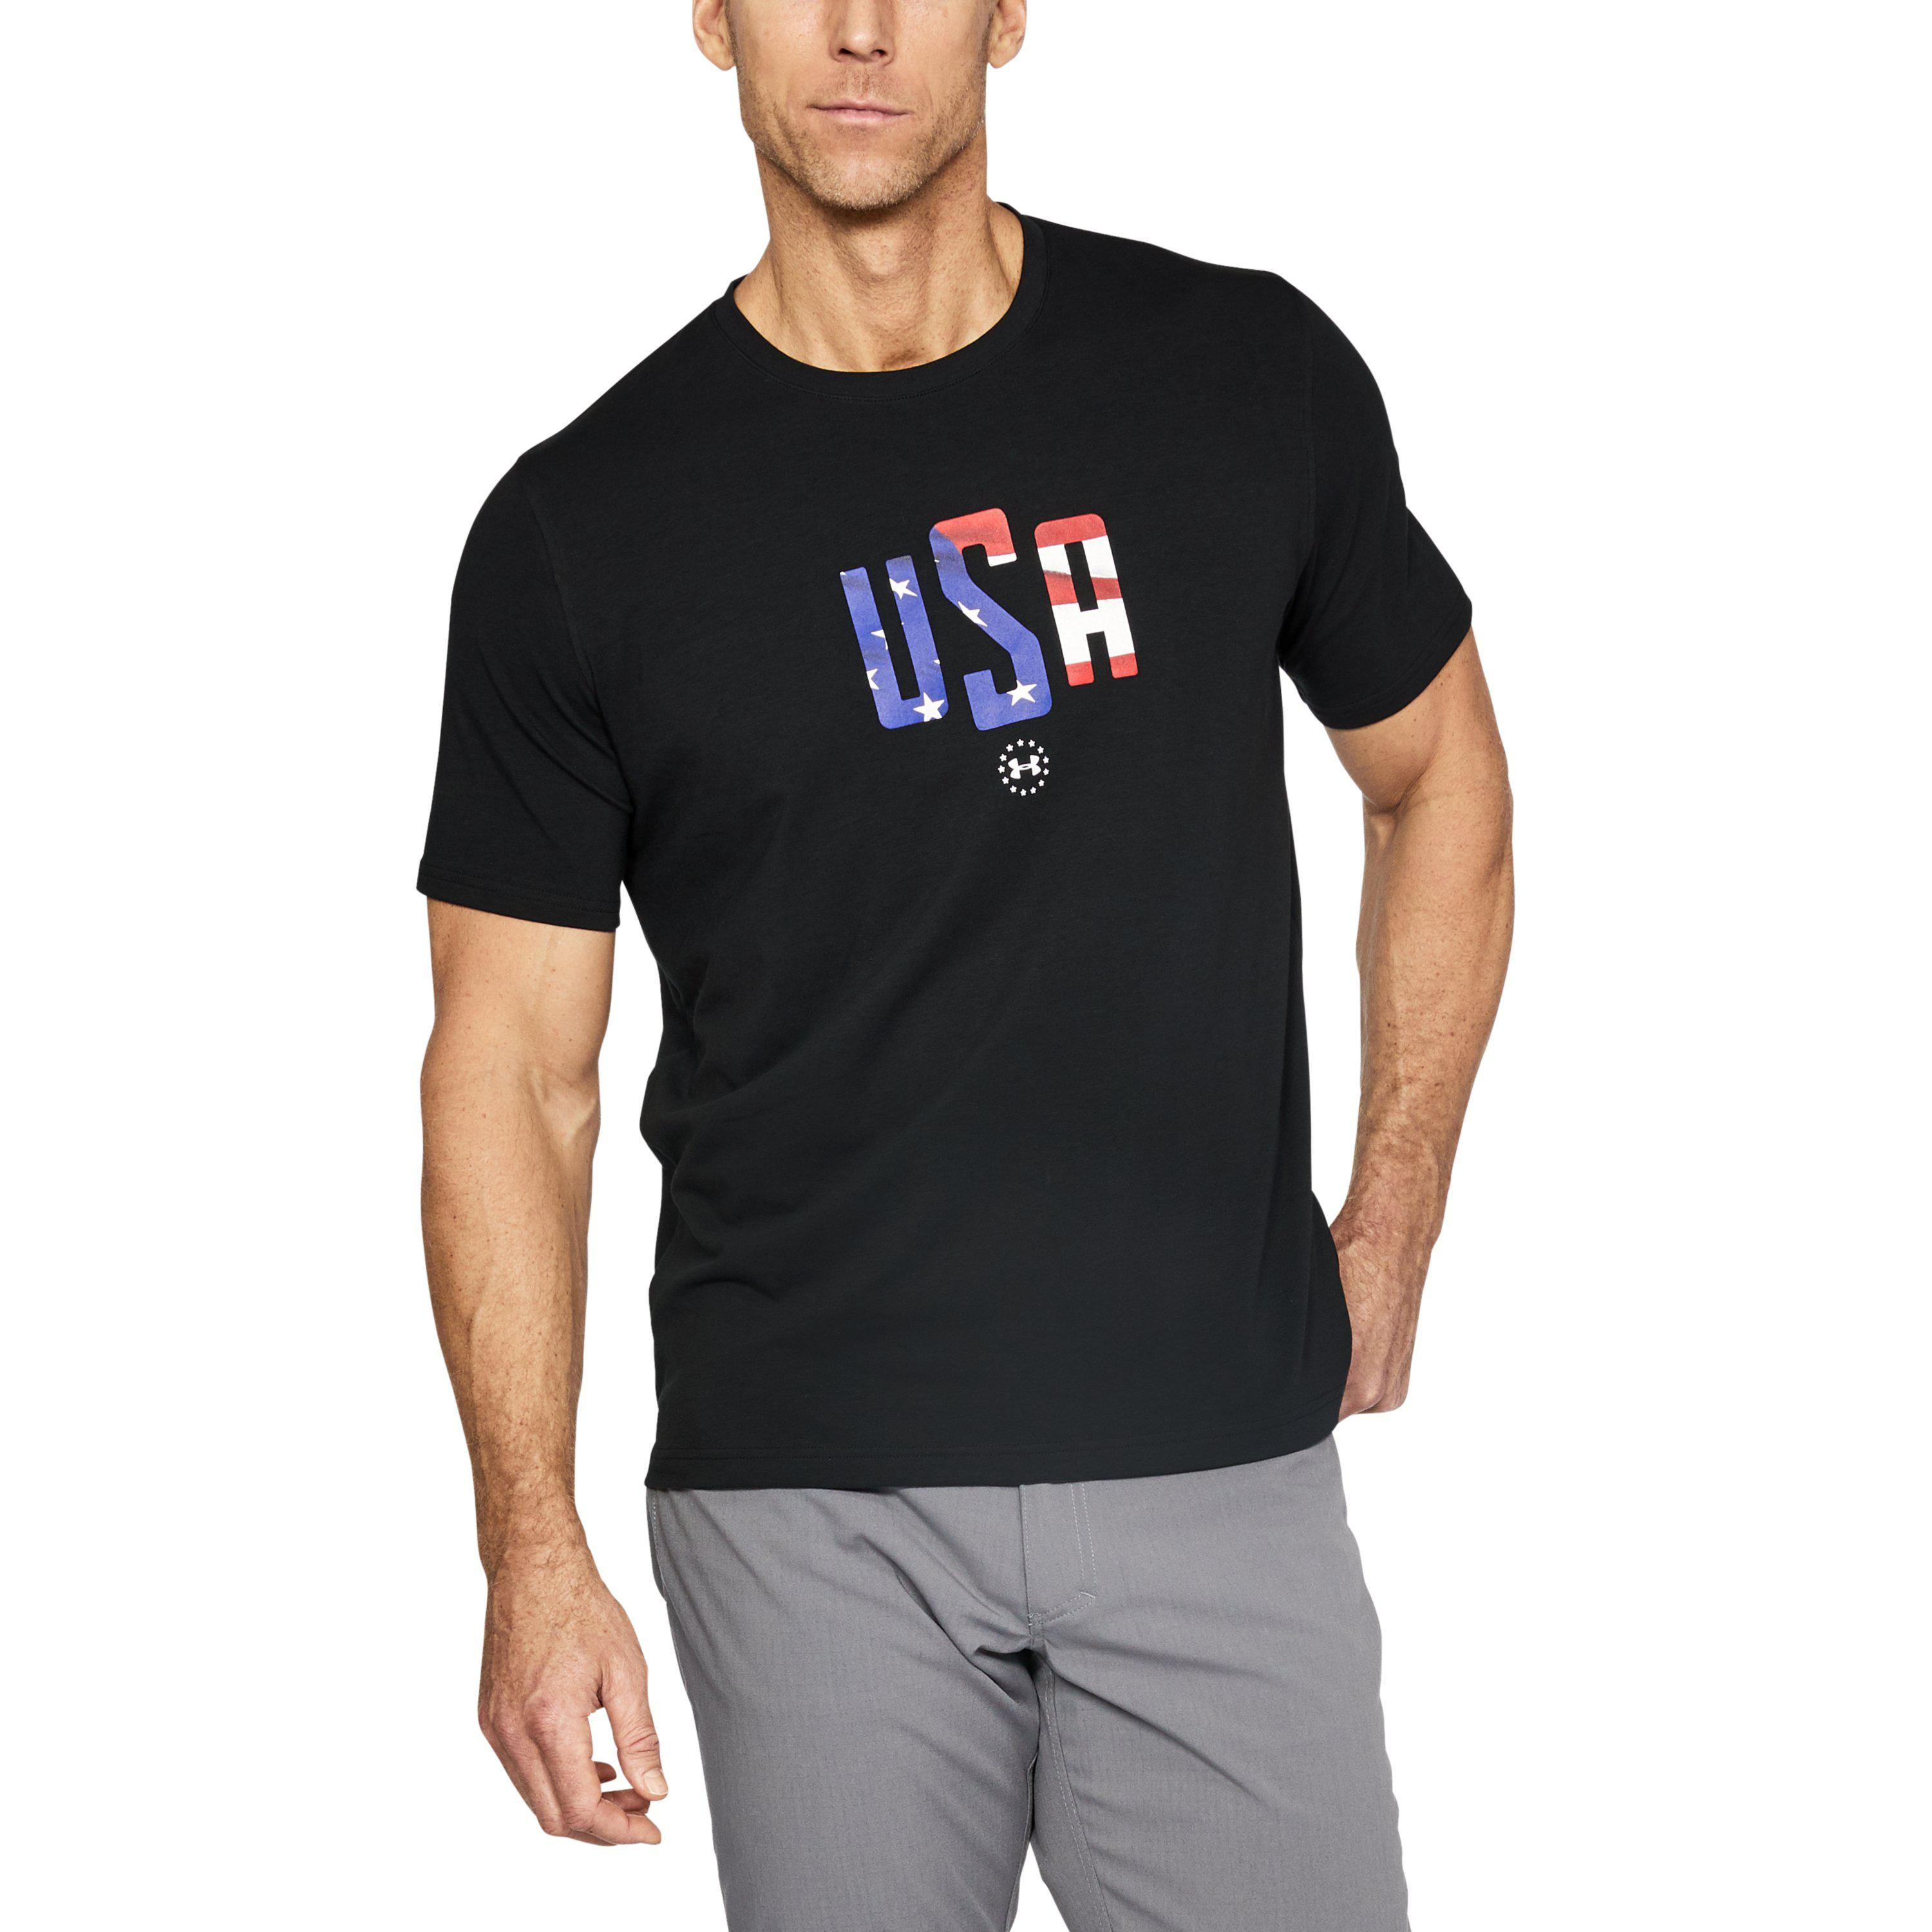 cedc452b1 American Flag T Shirt Walmart – EDGE Engineering and Consulting Limited